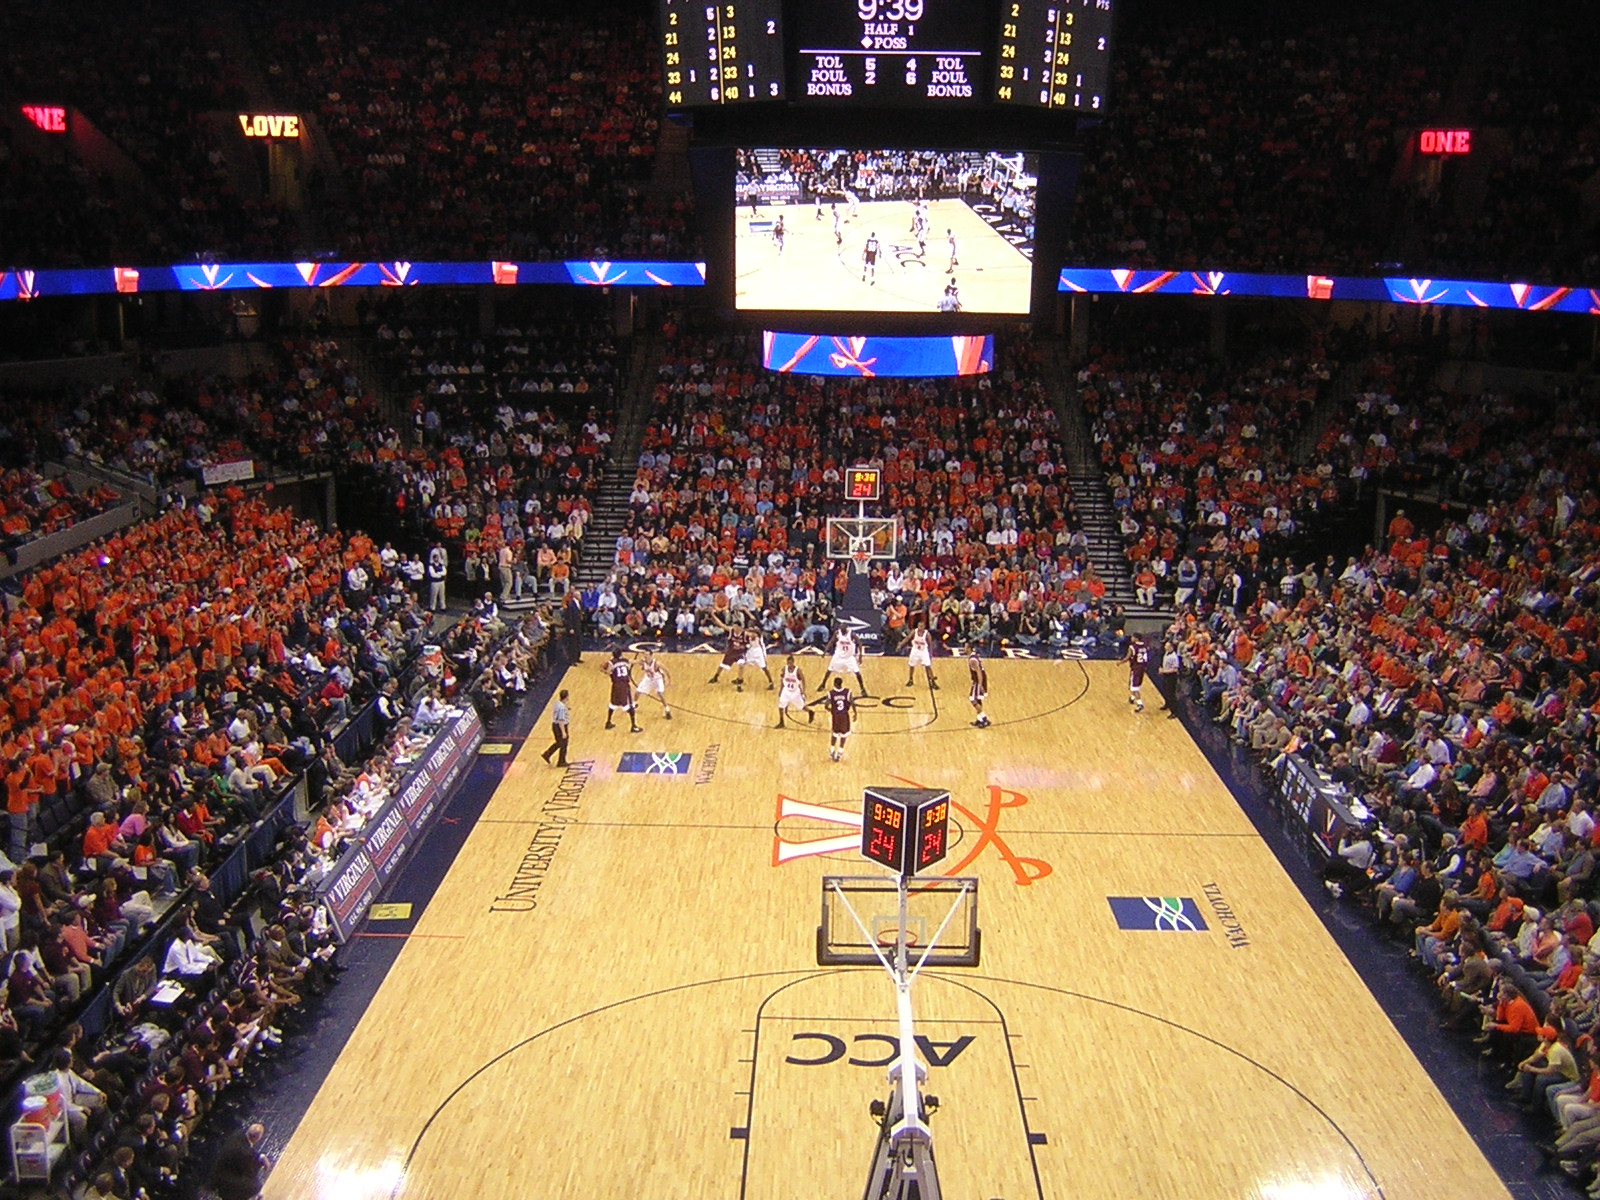 File:2006-2007 Virginia Tech at Virginia men's basketball ...